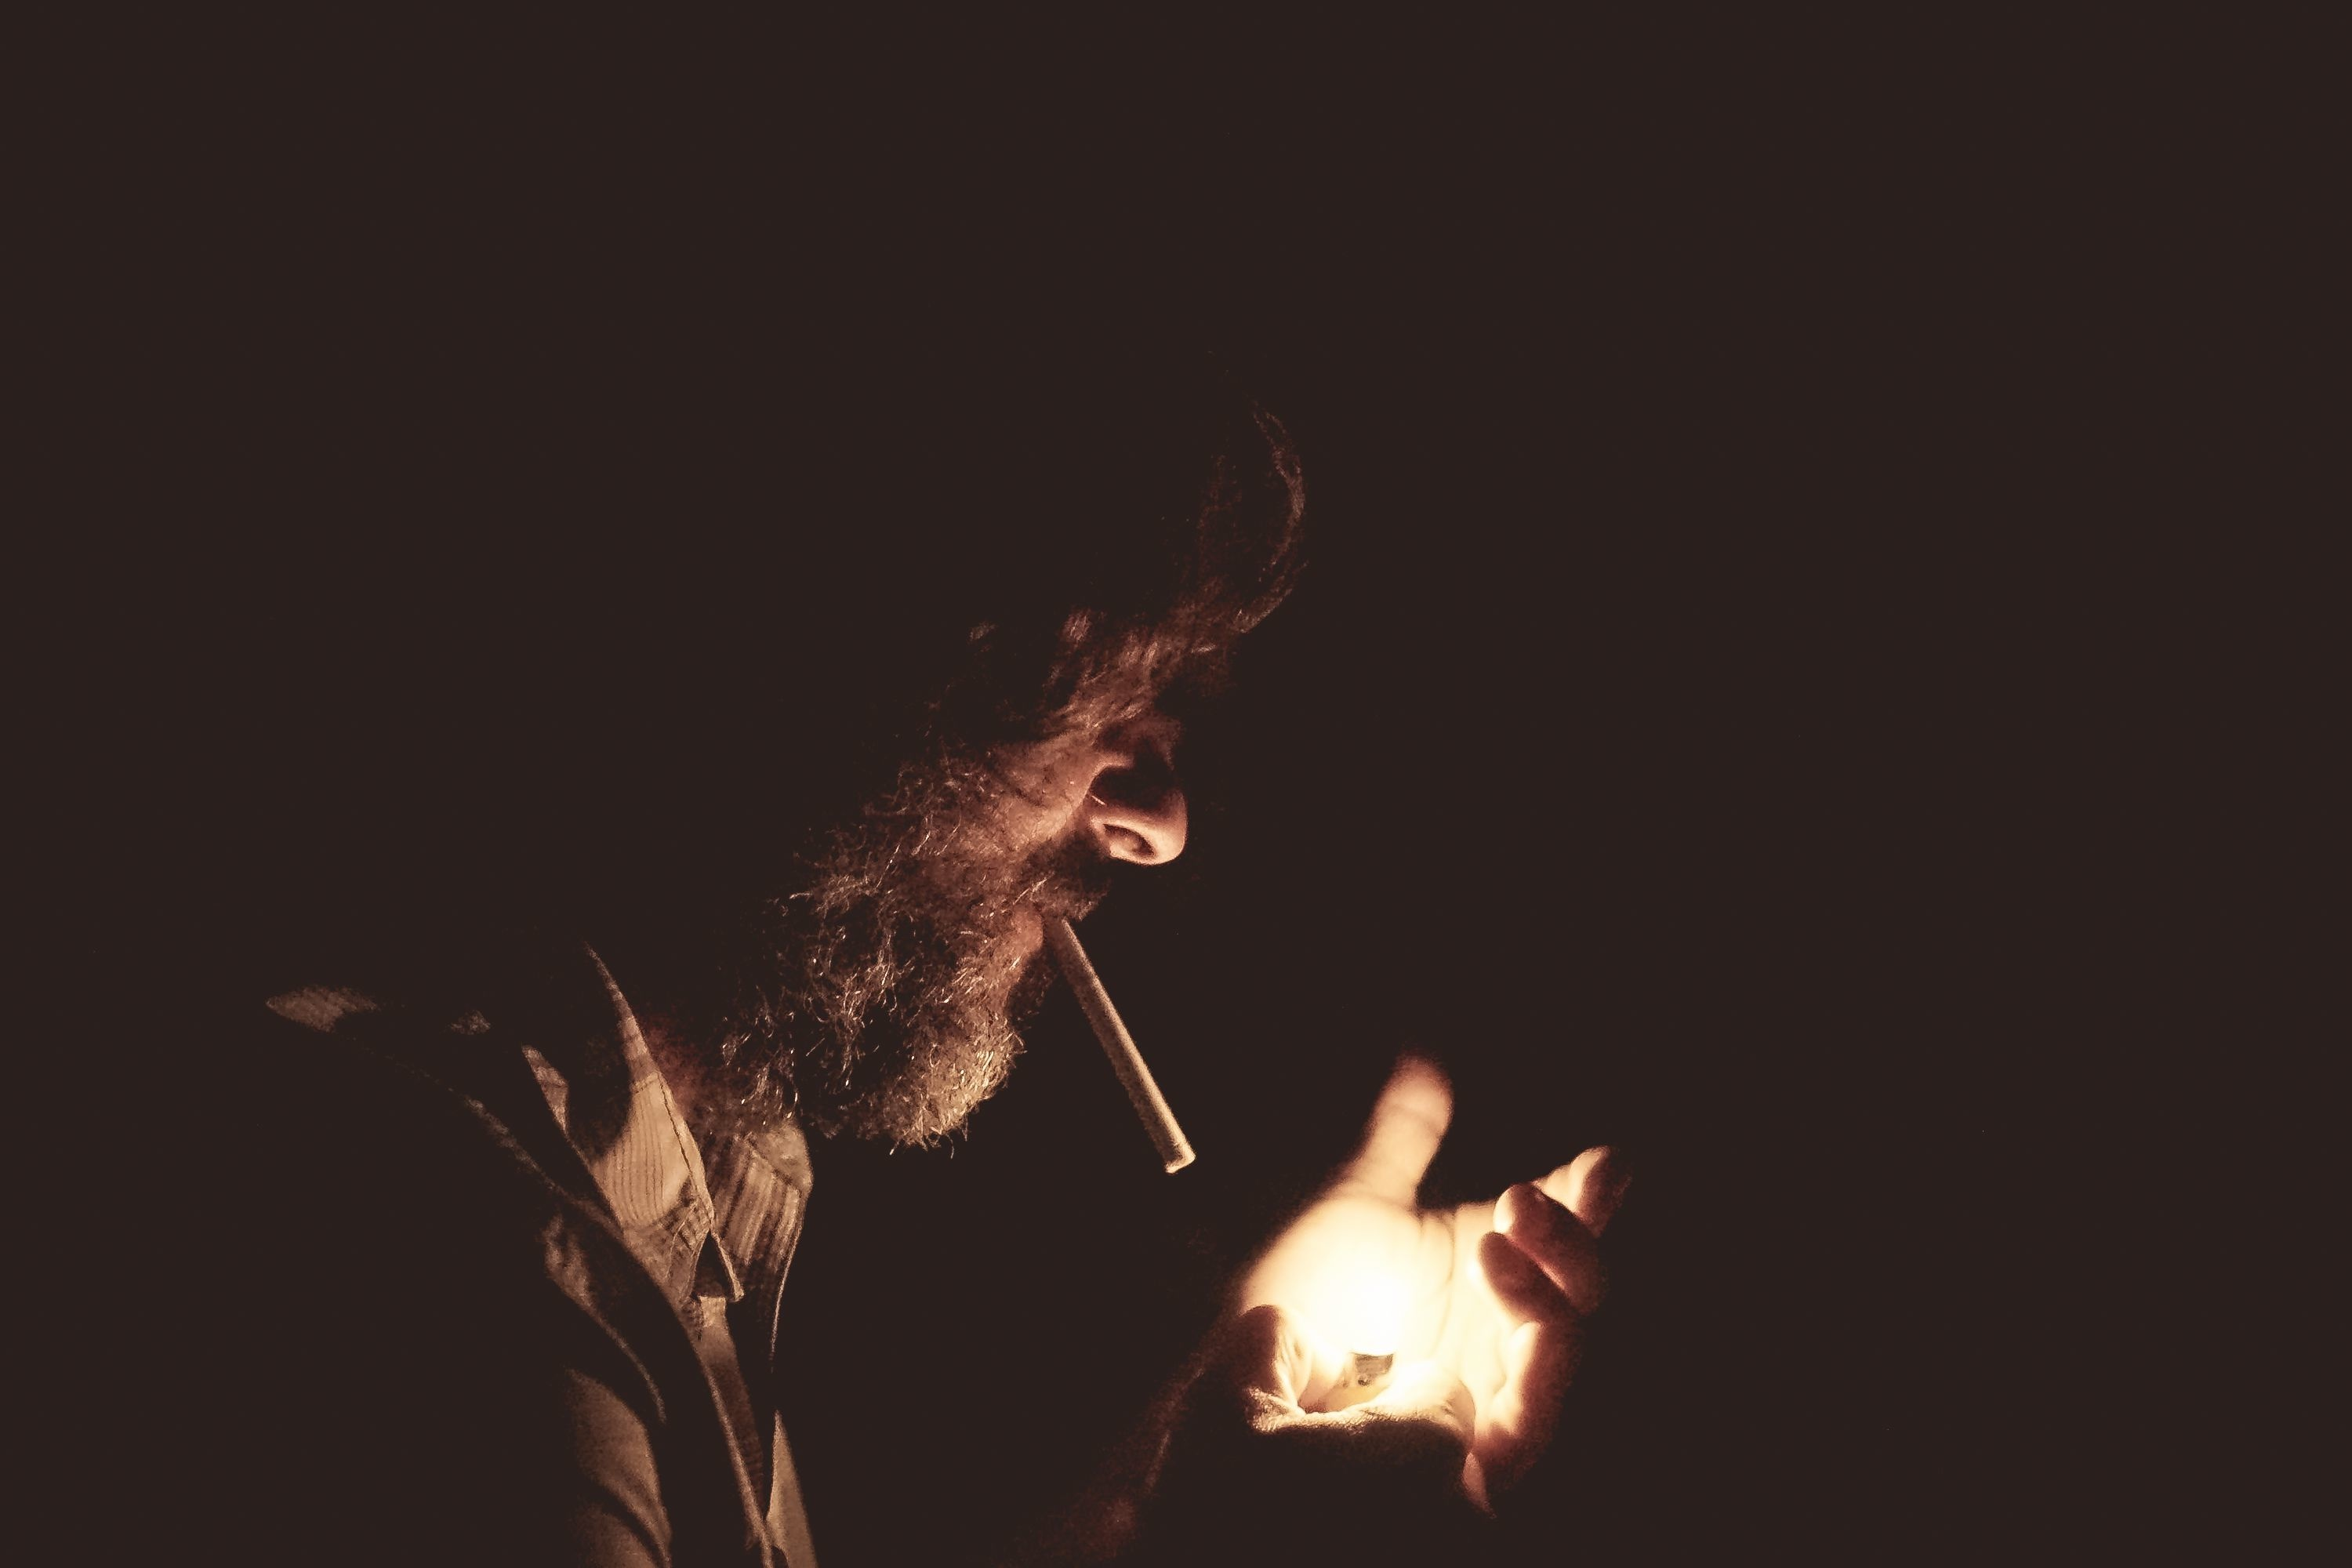 SMOKING 'MAKES GERMS MORE RESILIENT'